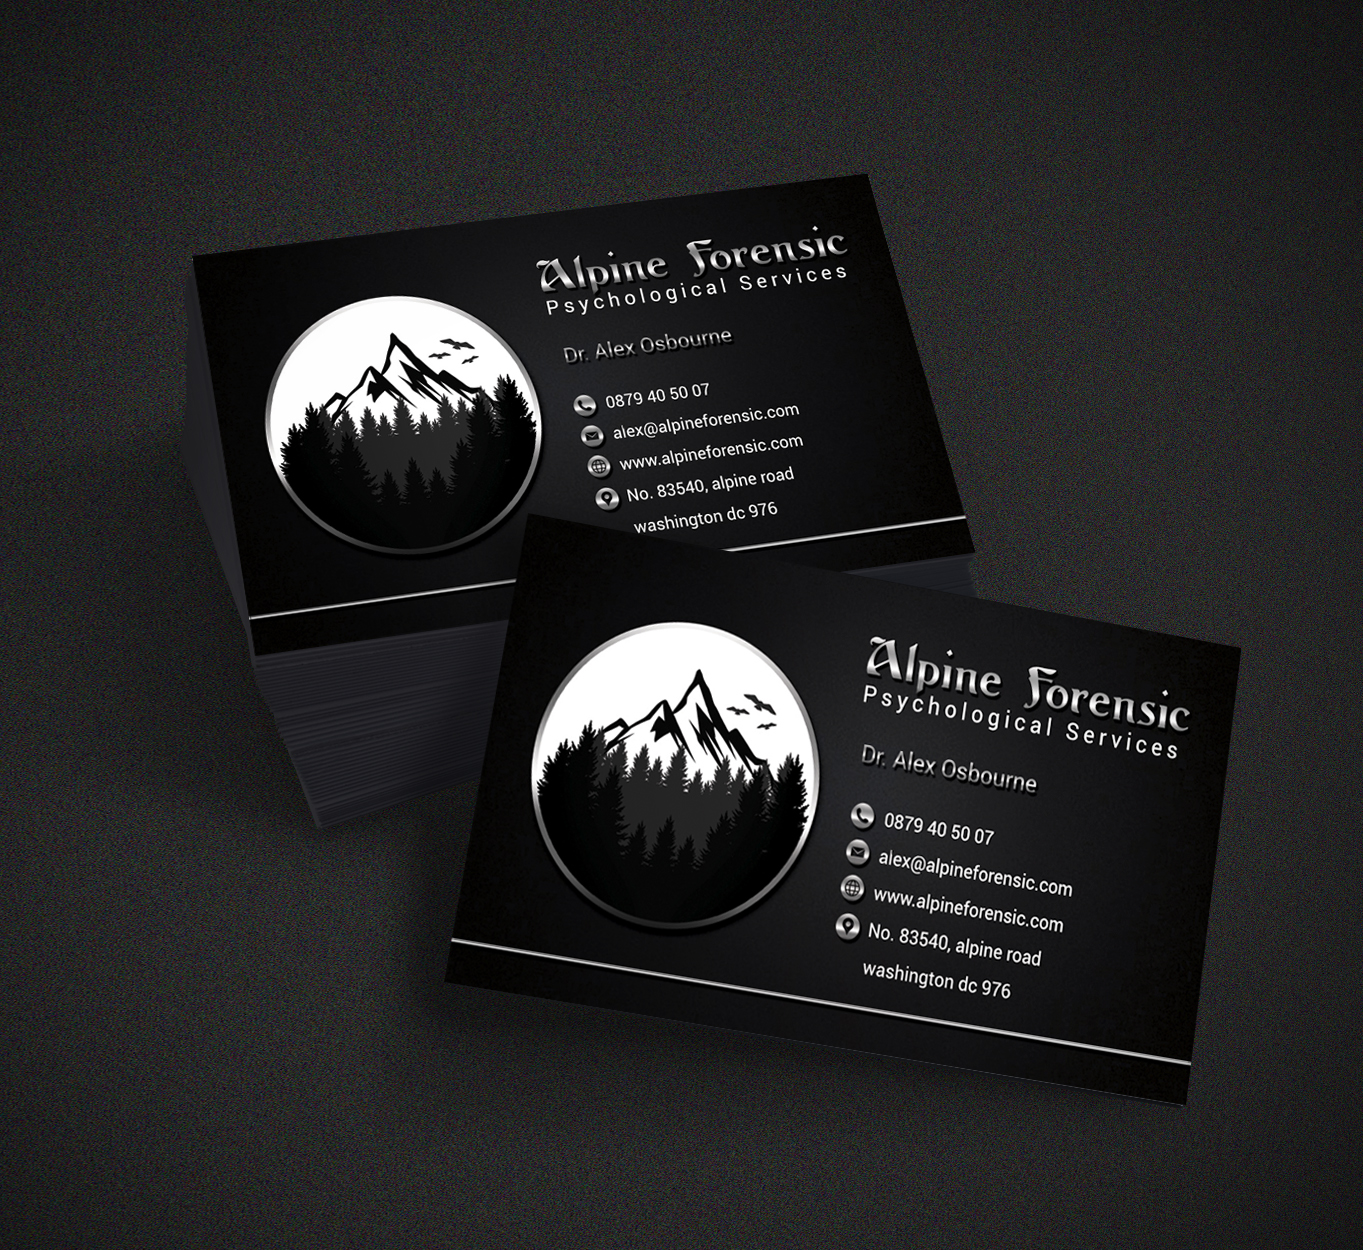 Serious professional medical business card design for a company by business card design by hardcore design for this project design 18236727 reheart Gallery